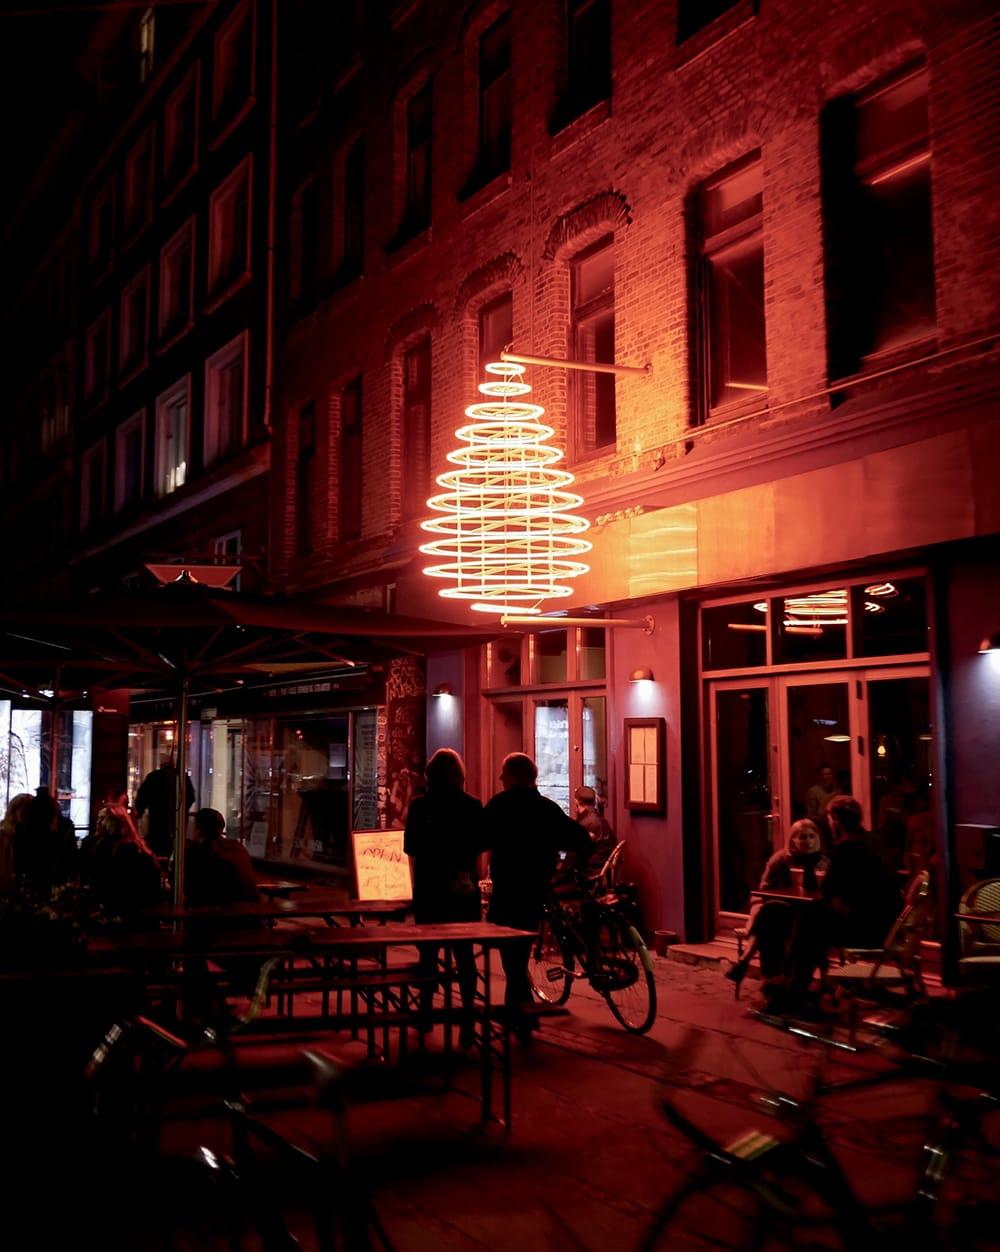 Big, neon light in the shape of drop hang above passersby. Copenhagen